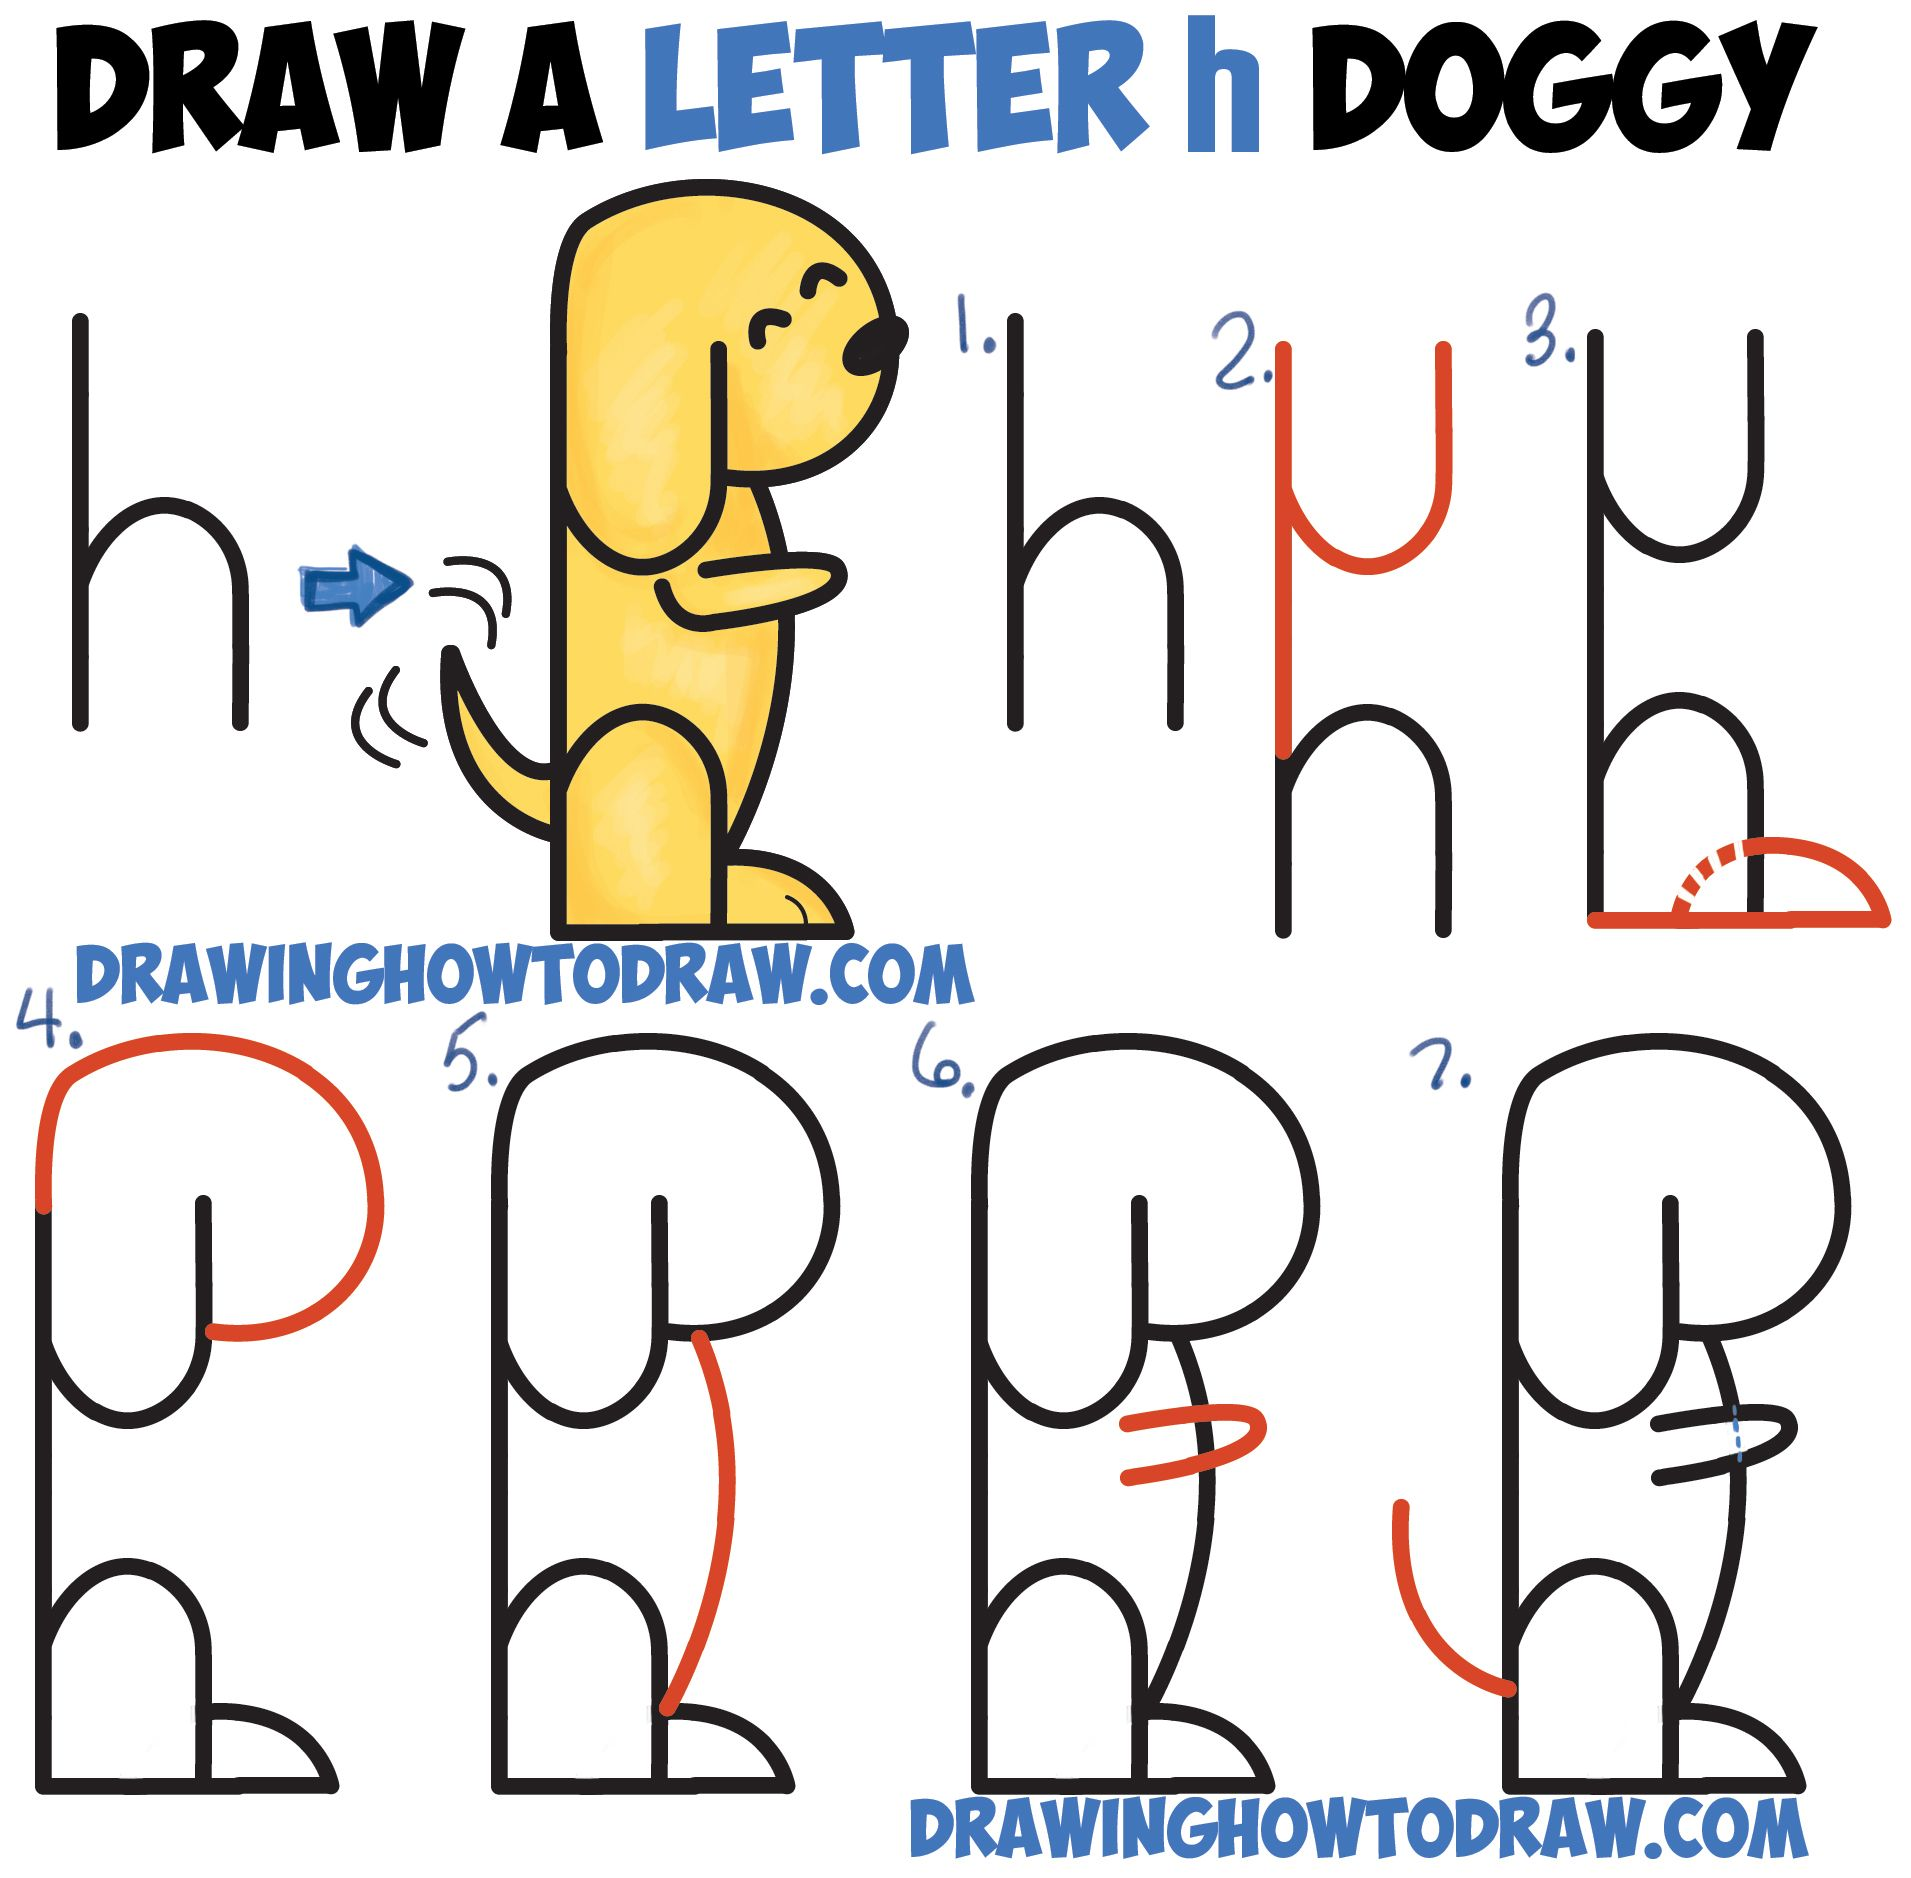 Cartoon Characters 9 Letters : How to draw a cartoon dog begging from letter h shapes